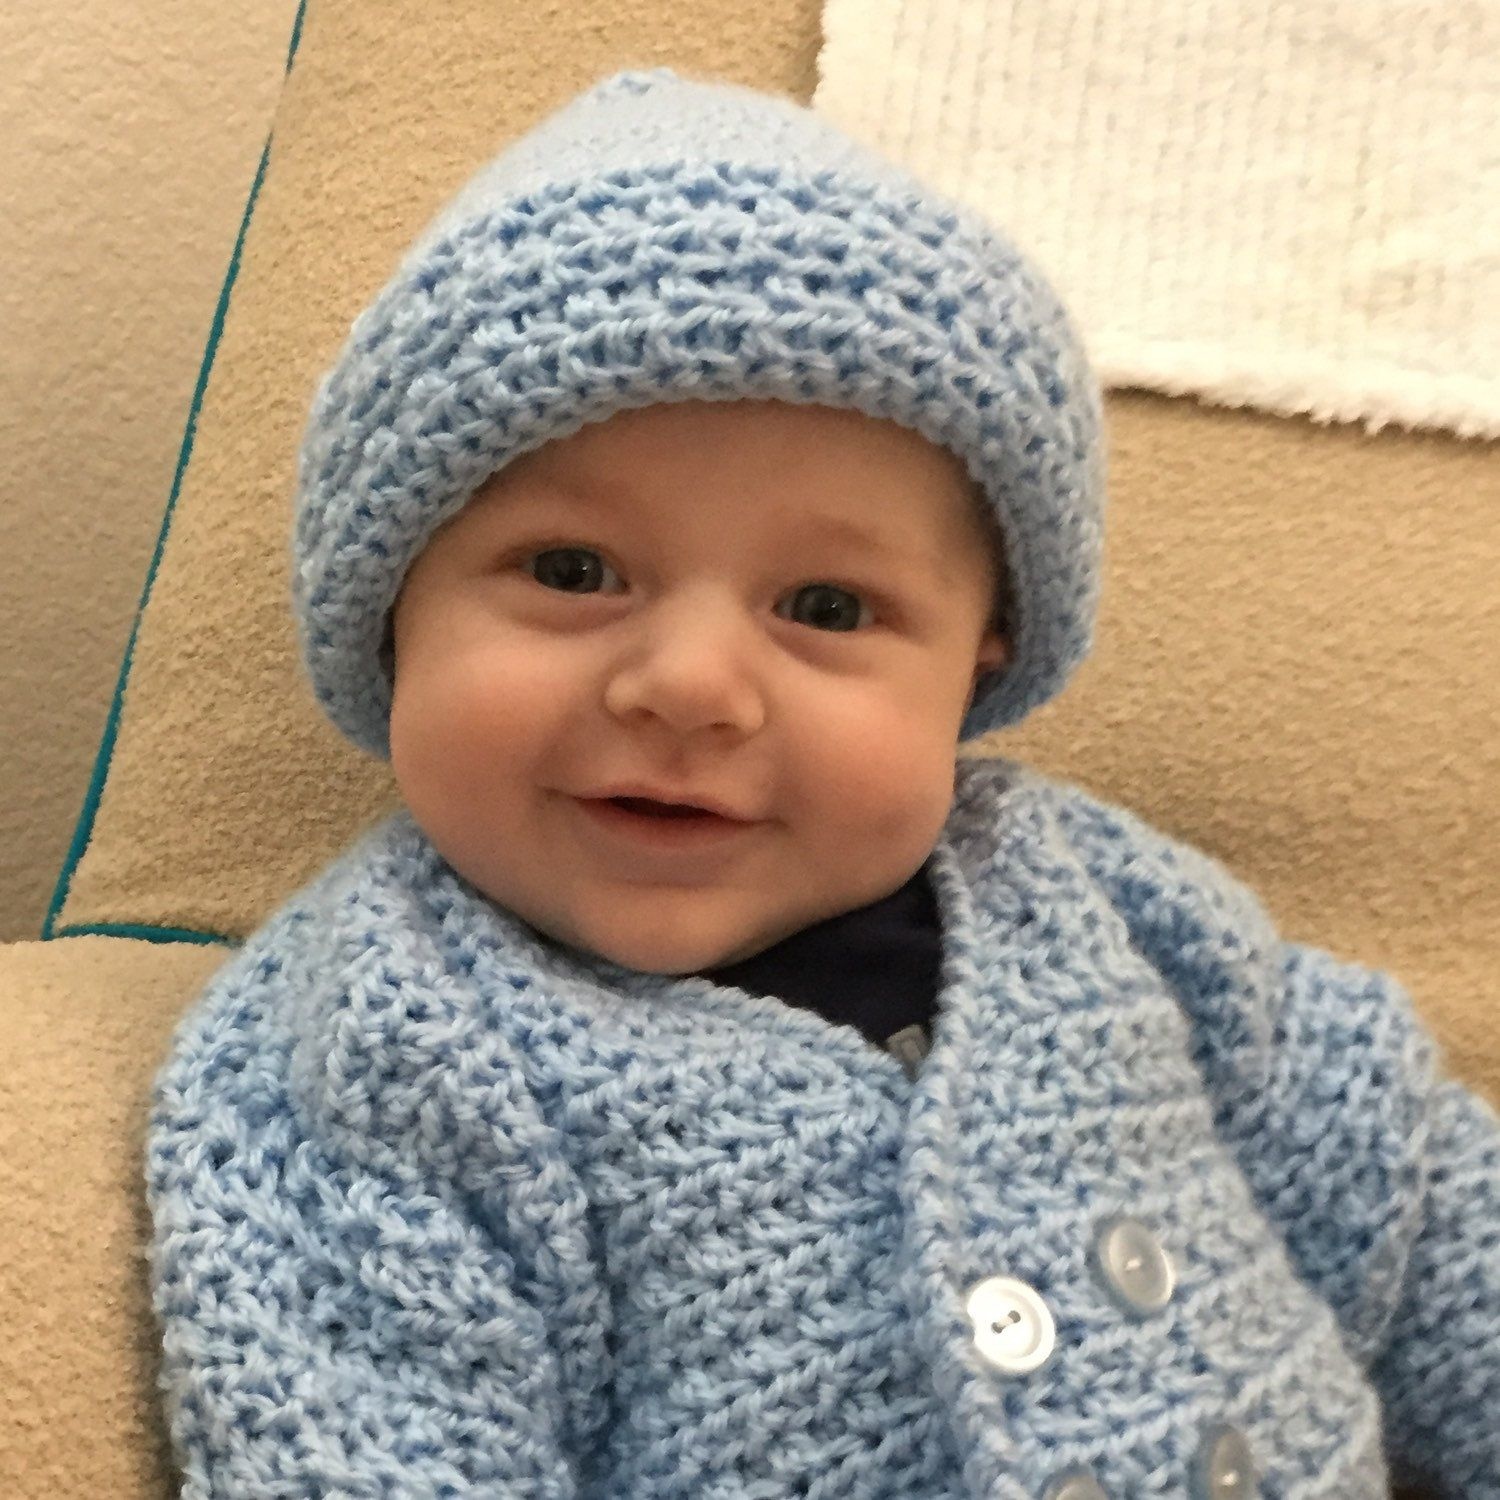 My bosses' grandson is so cute in this picture wearing one of my crocheted sweaters. Perfect for any little man. Look at that smile!